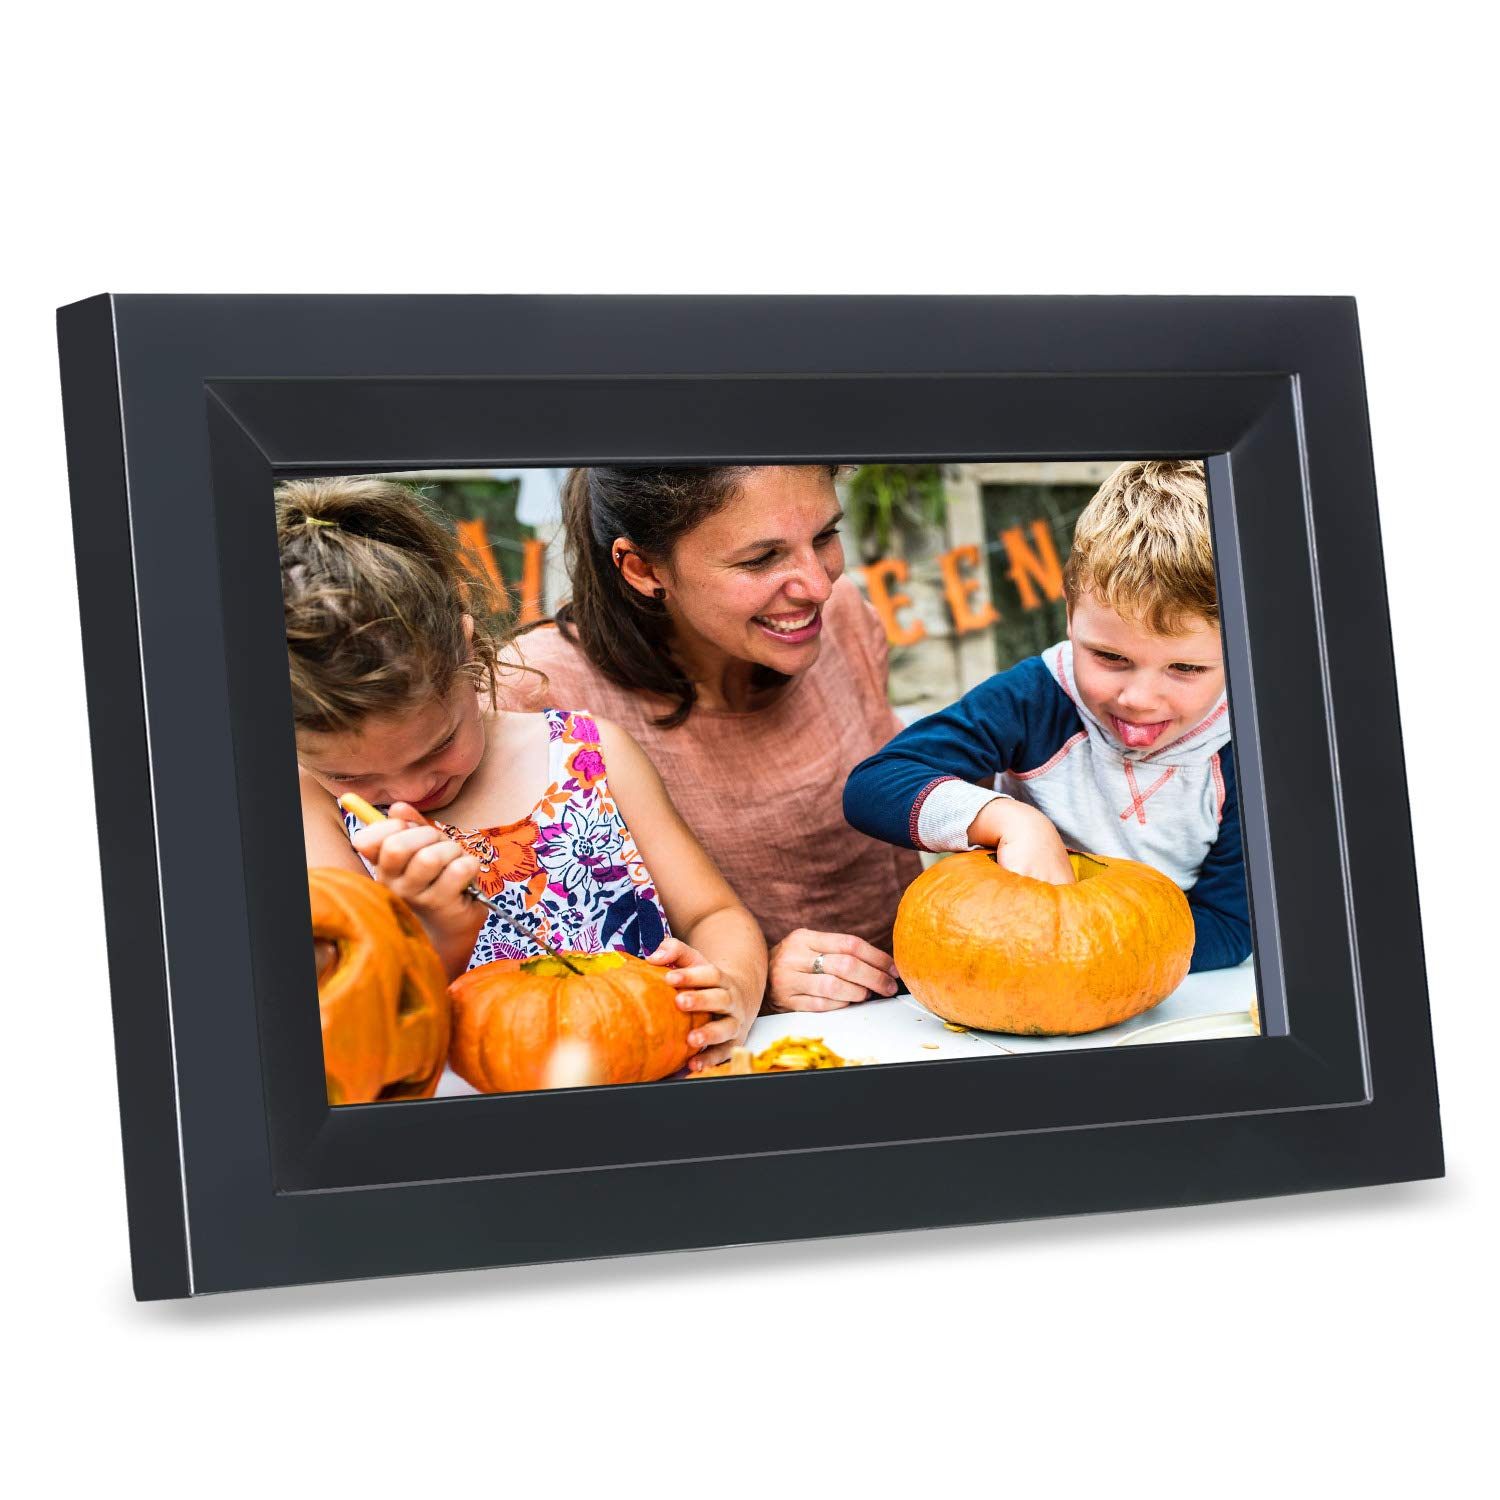 Digital Picture Frame iDeaPLAY 10.1 inch WiFi Touchscreen Photo Frame with 8GB Storage Volume, 1280x800 HD Display, Gift Choice,Support Photo, Music, Calendar, Clock - Black